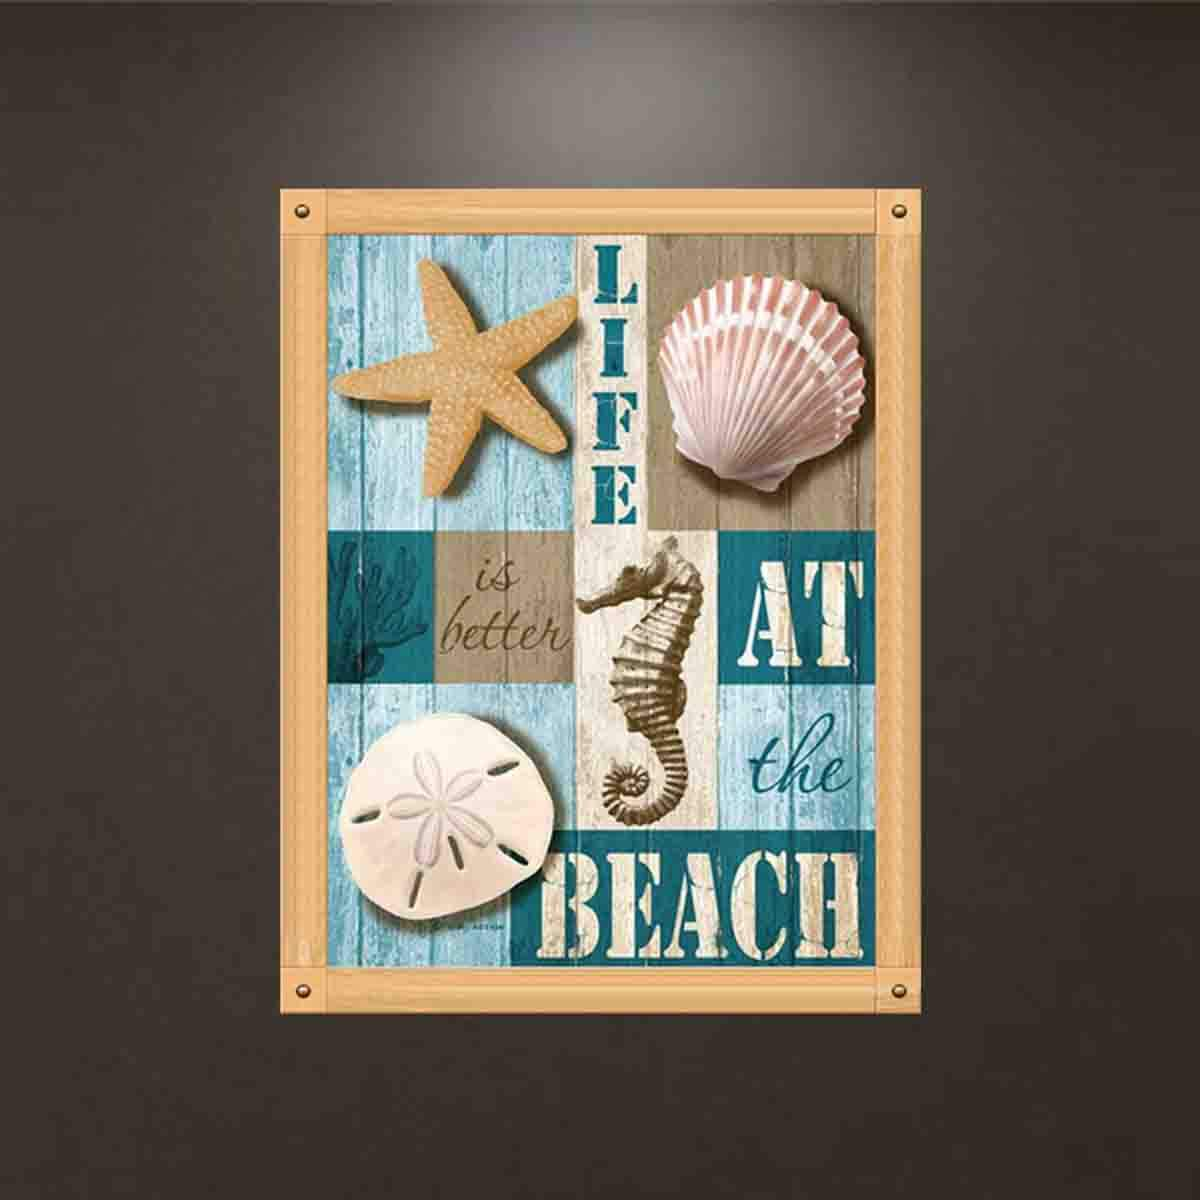 Life at Beach TWBB Diamond Painting for Adult 5D Diamond Painting Full Drill Paint with Diamonds fit DIY,Diamond Art Kits for Adults,Beach Oil Painting Style